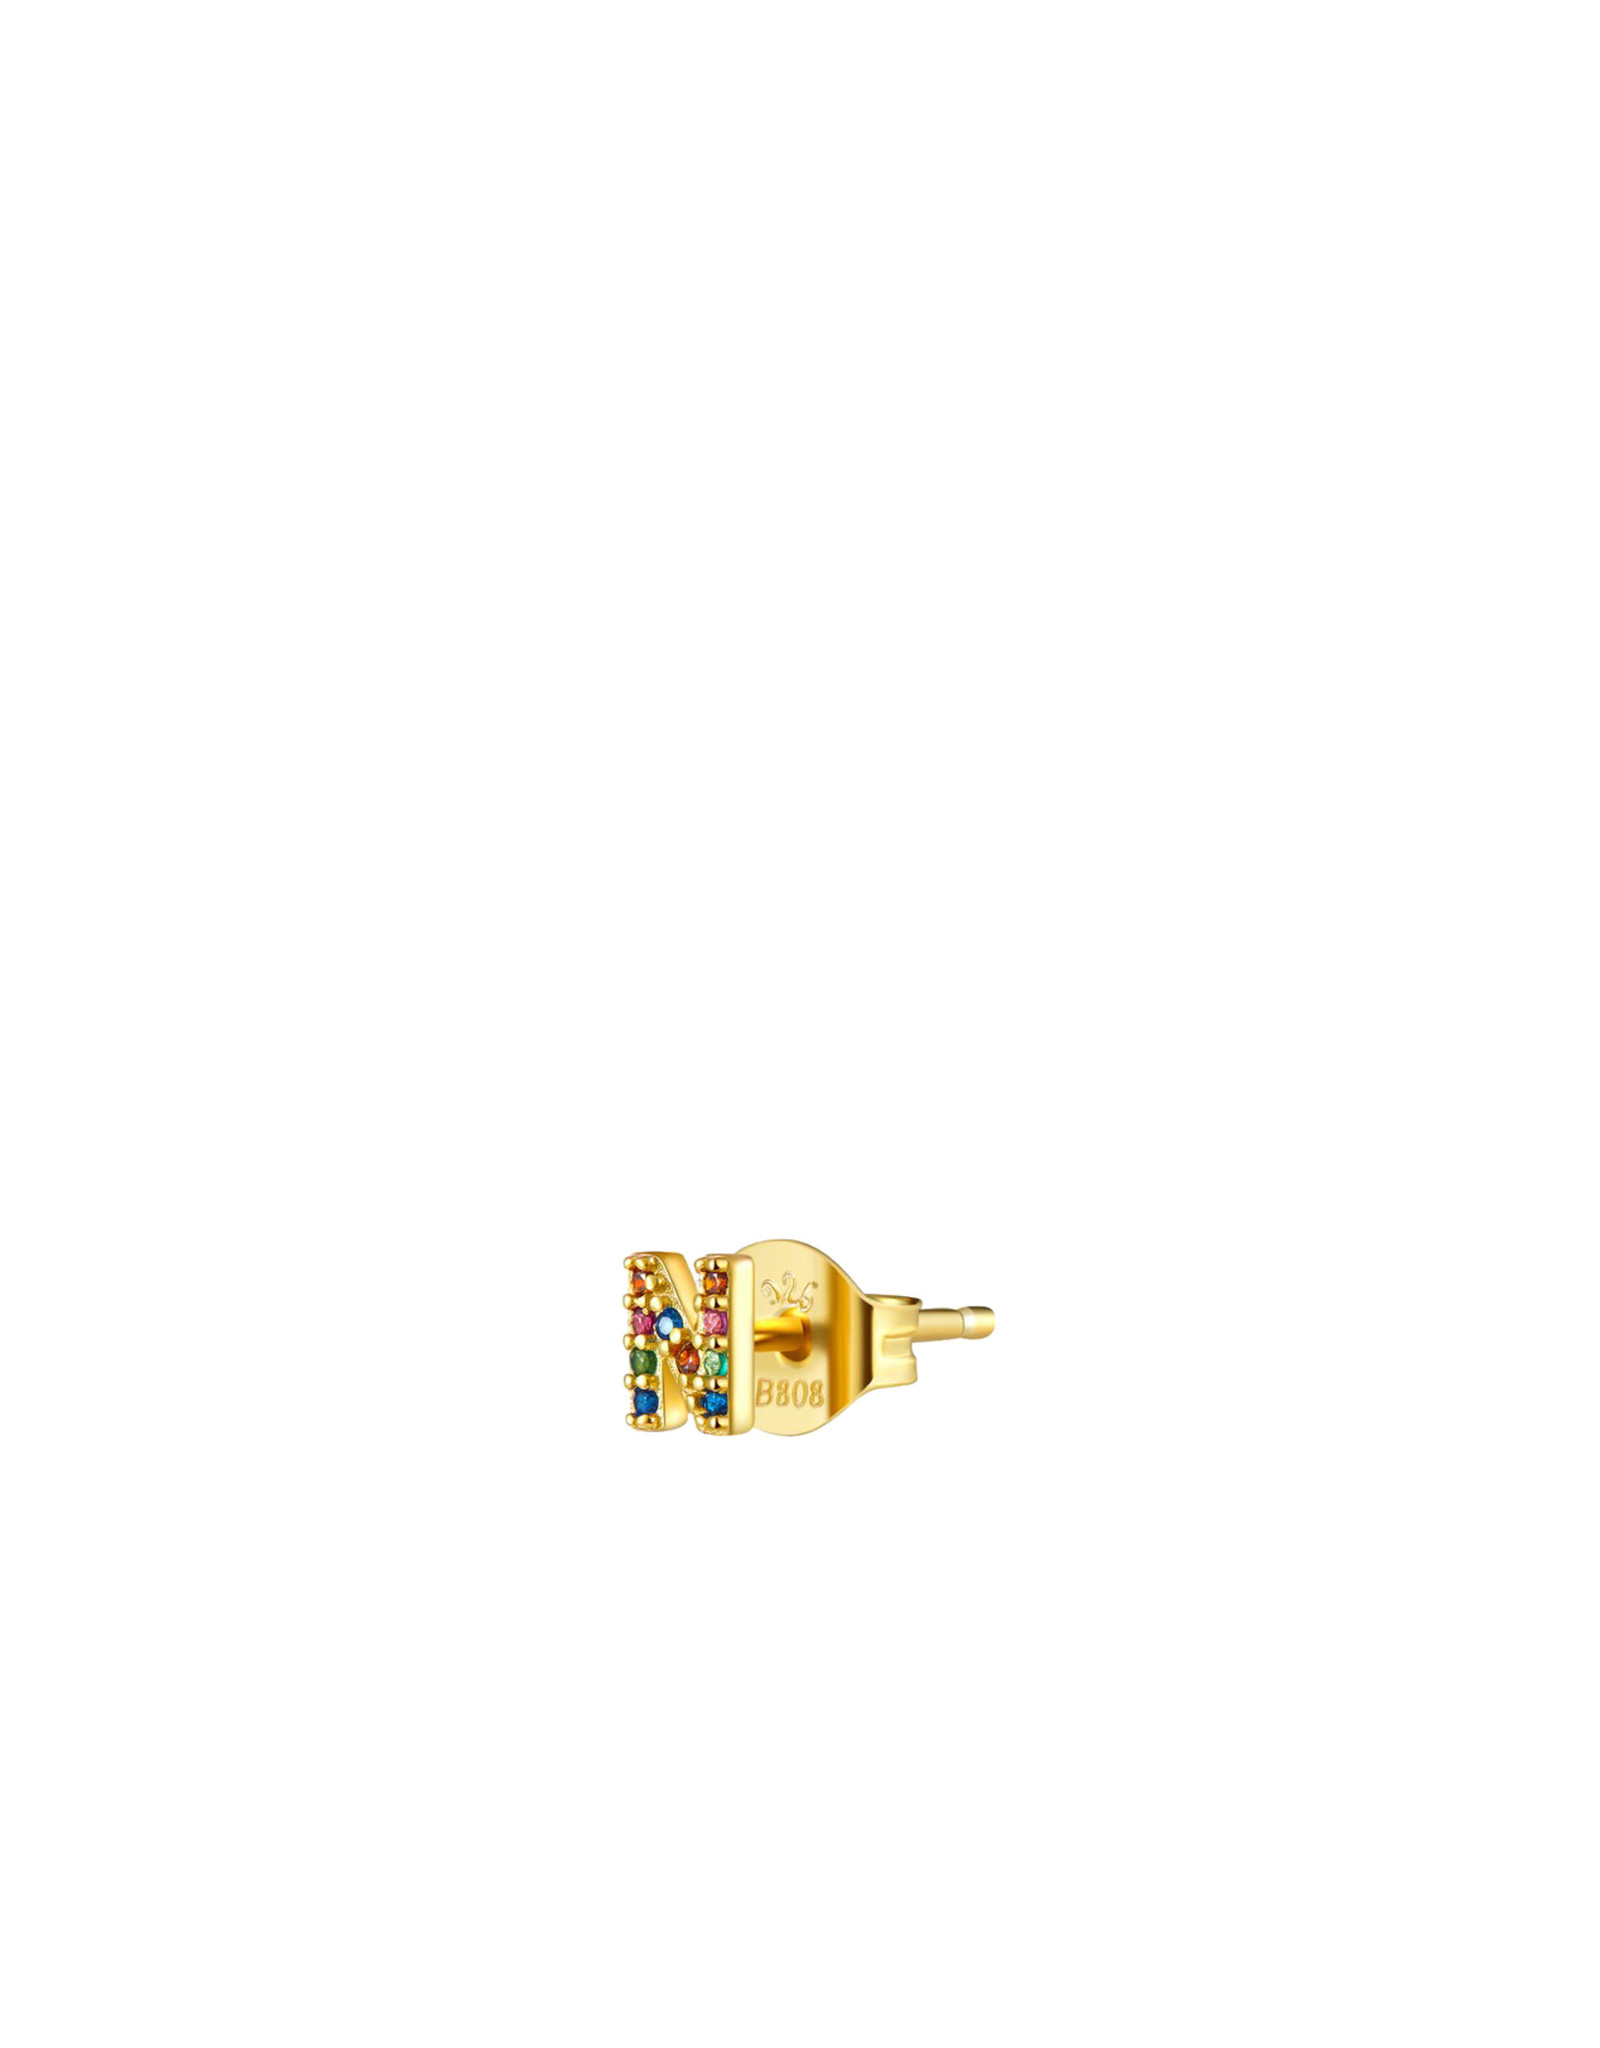 EARRING JOLIE INITIALS STRASS MULTI GOLD